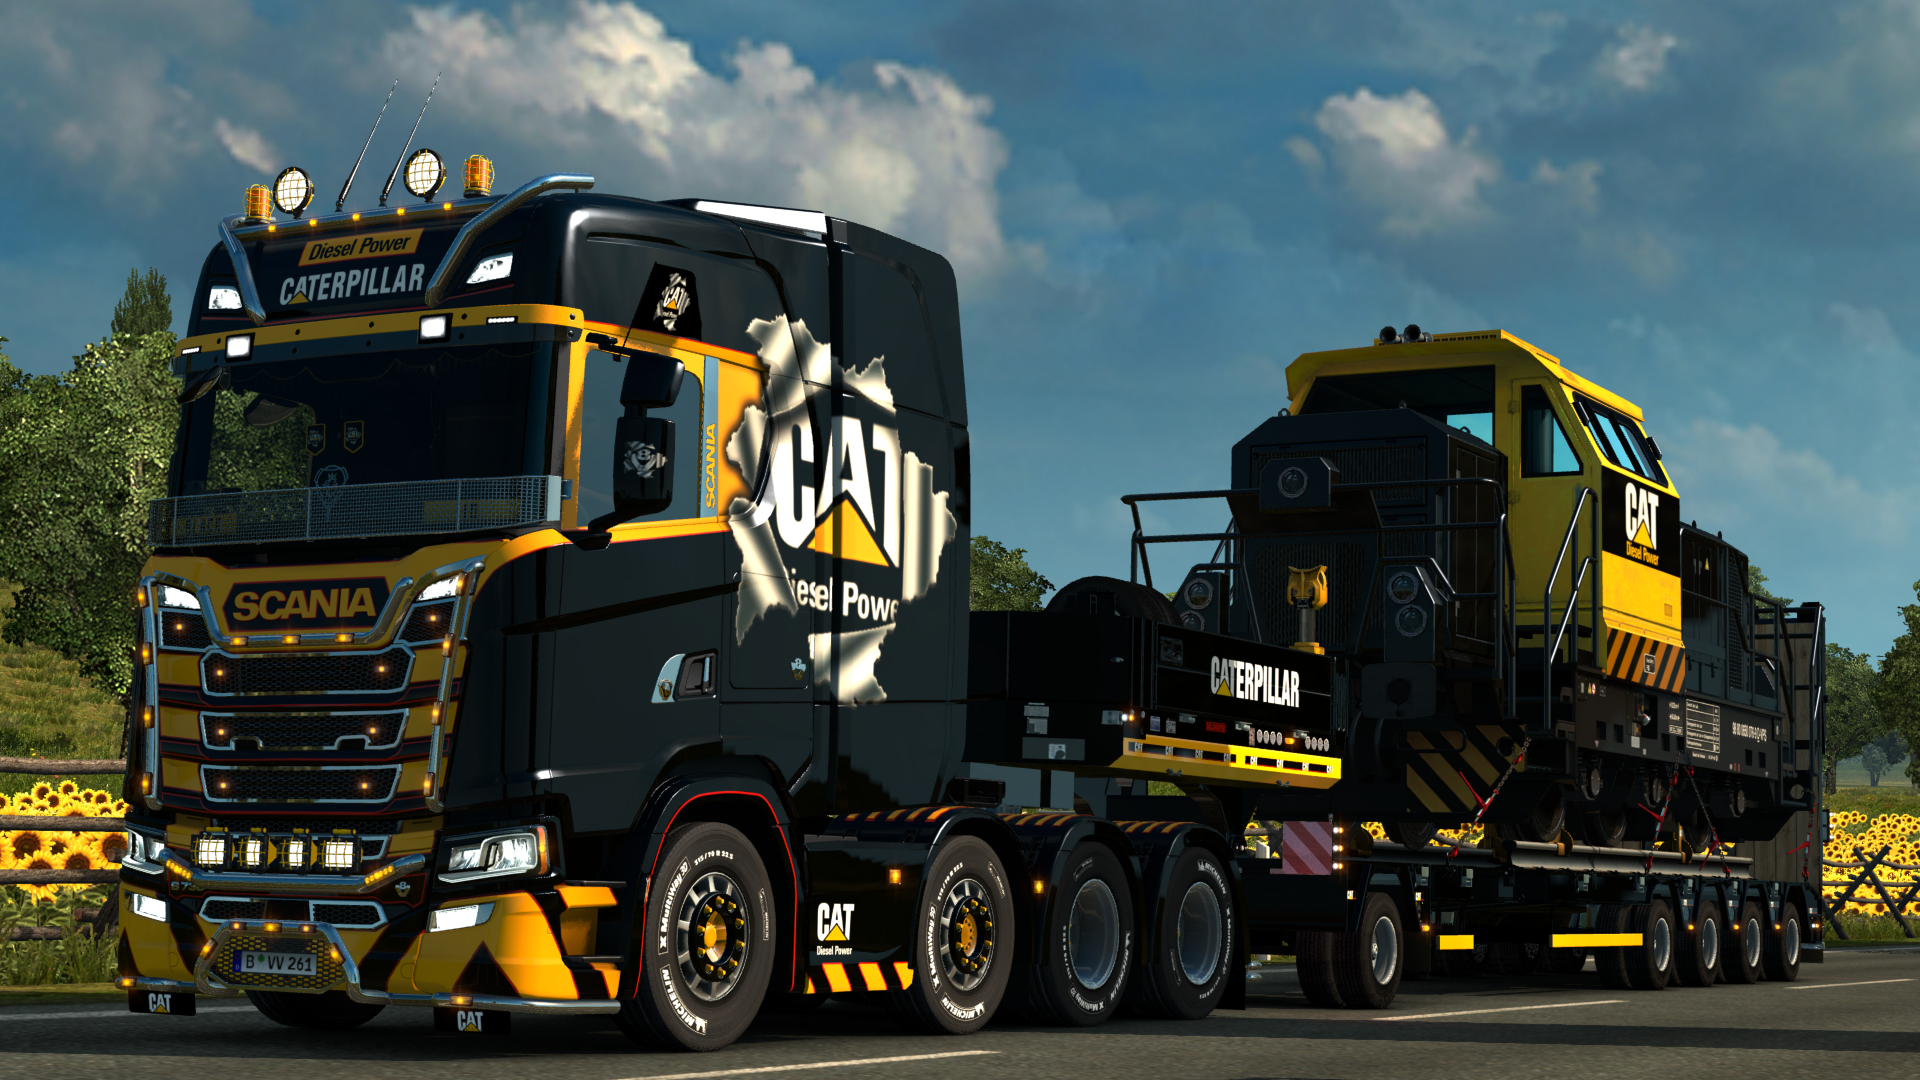 Scania 2016 V8 8x4 CAT - Euro Truck Simulator 2